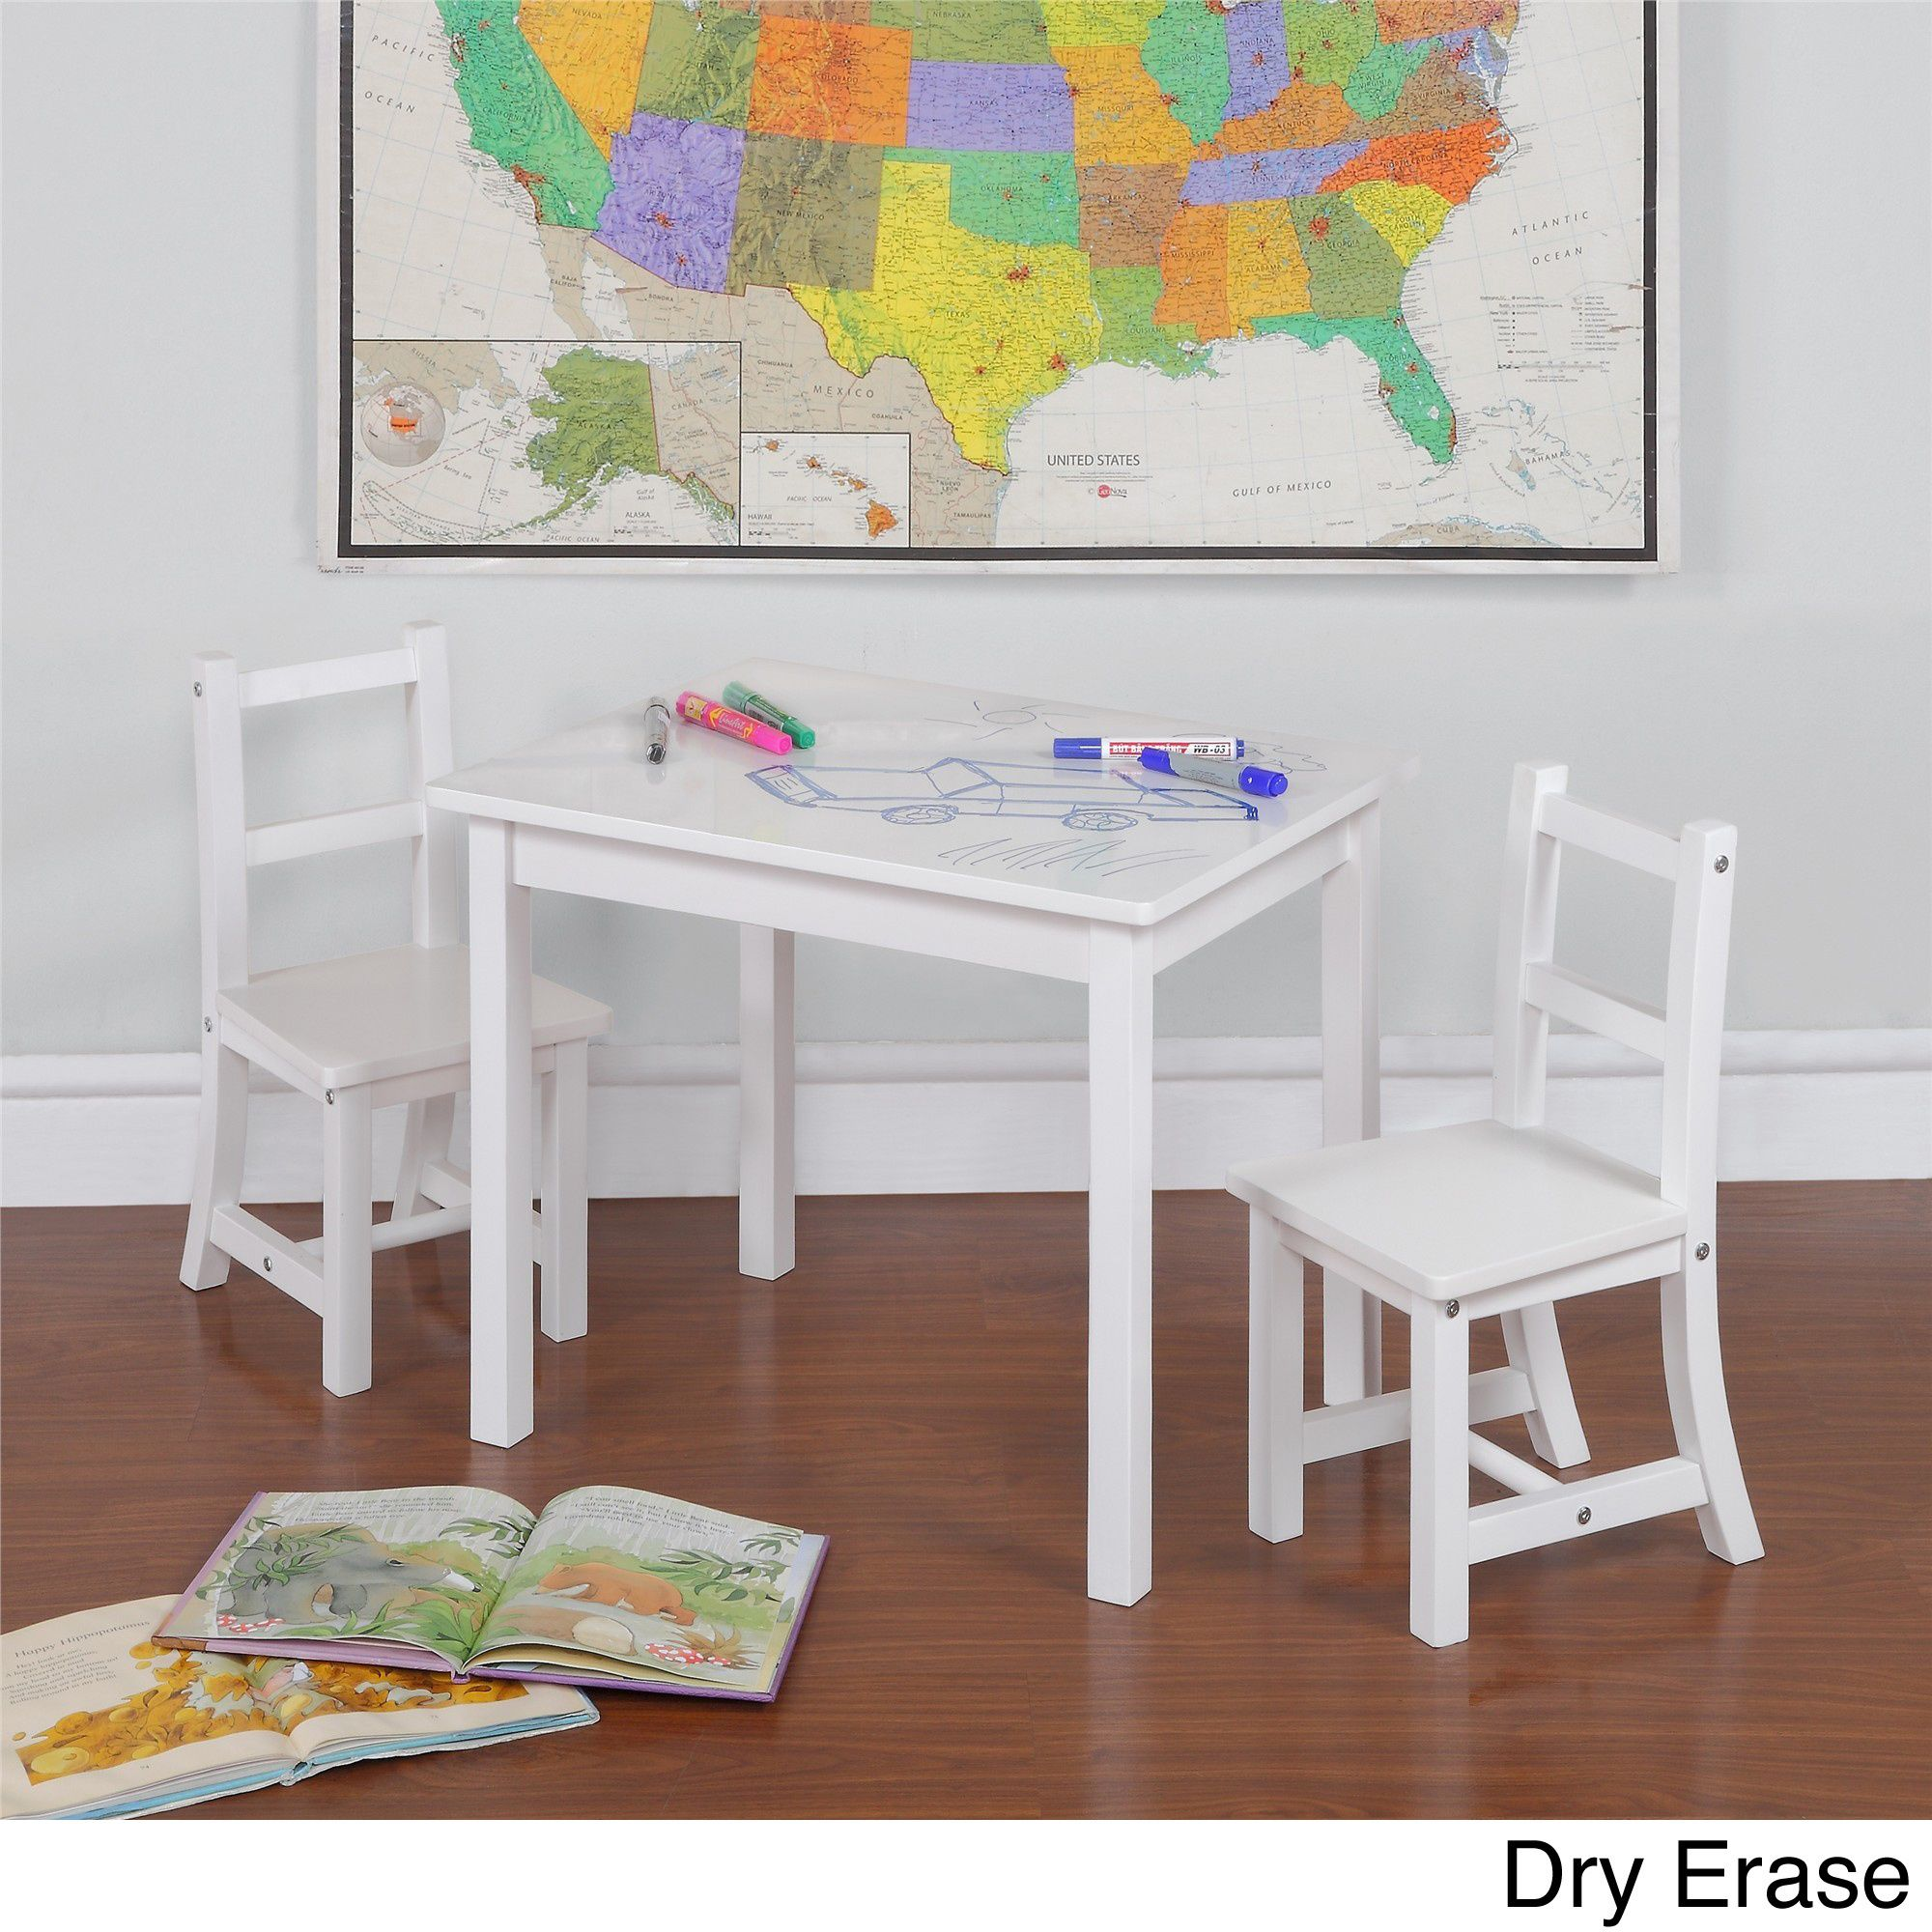 3 piece children's table and chair set with reversible top by